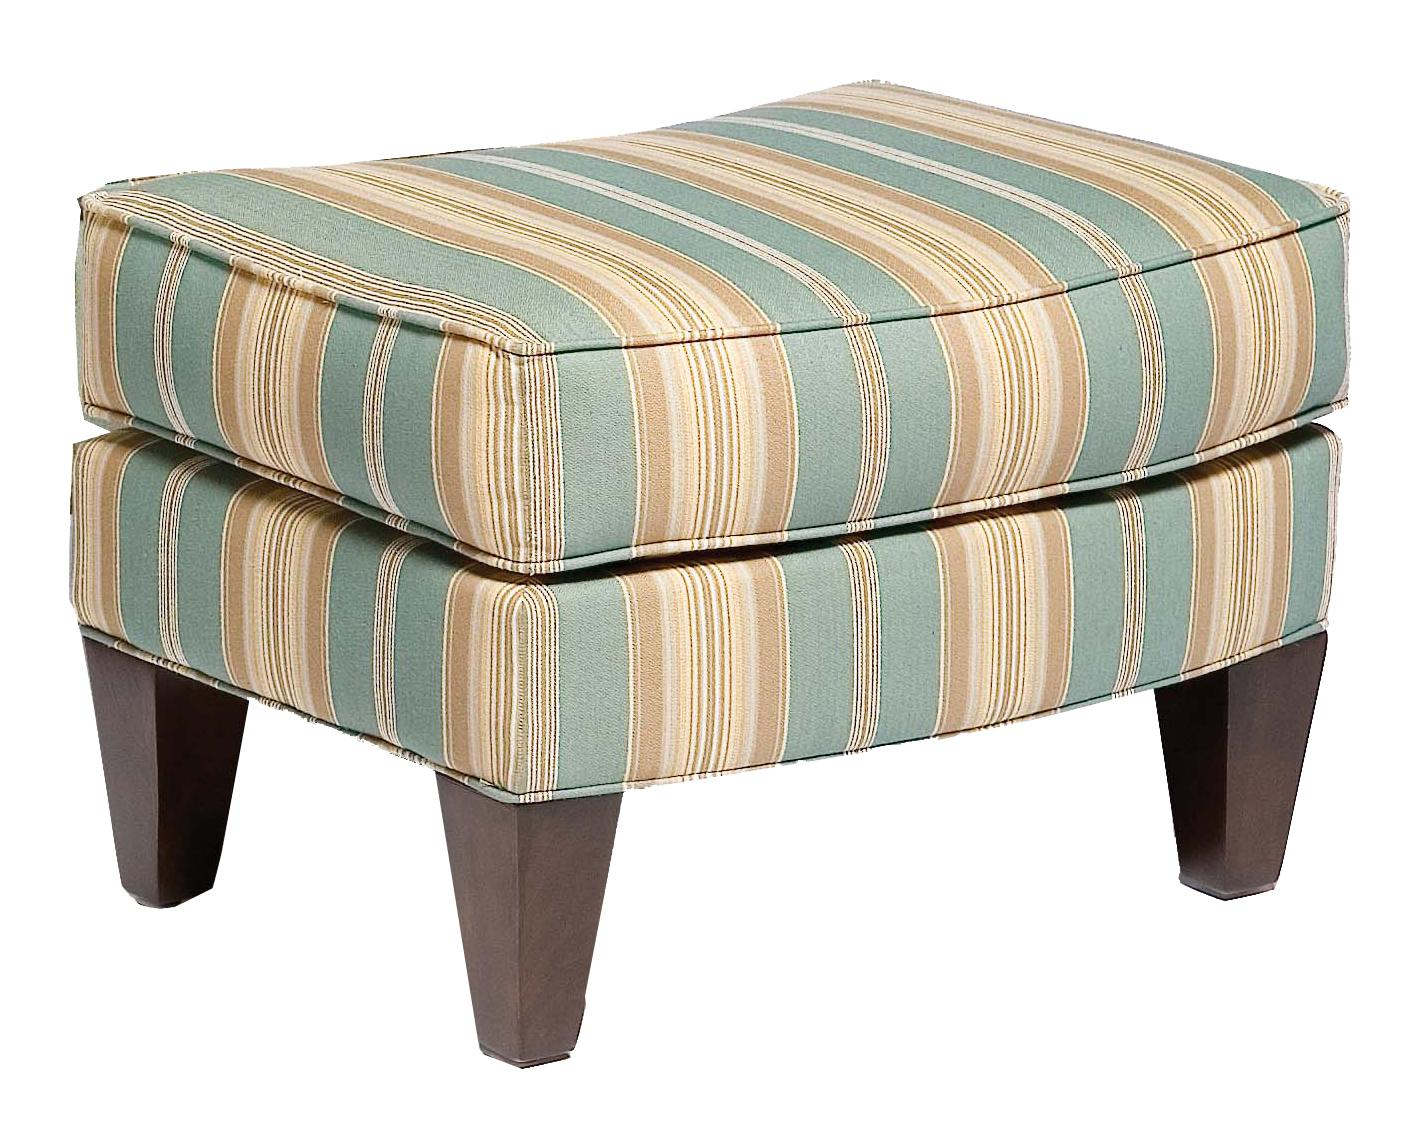 5706 Ottoman by Fairfield at Miller Home